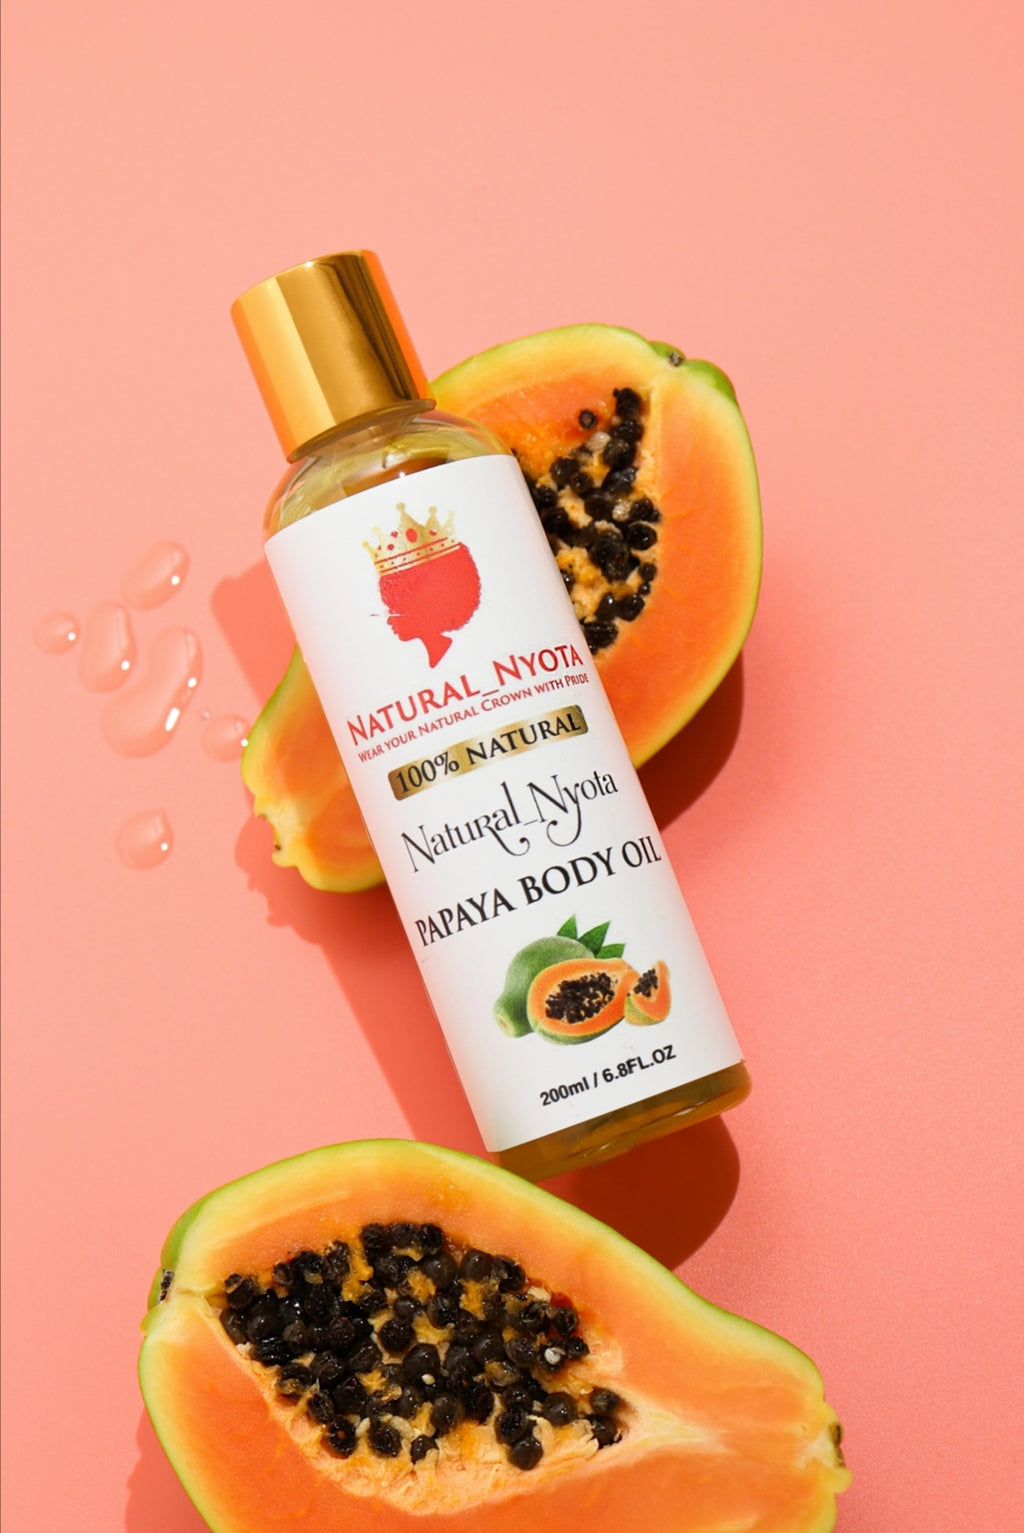 Papaya Body oil